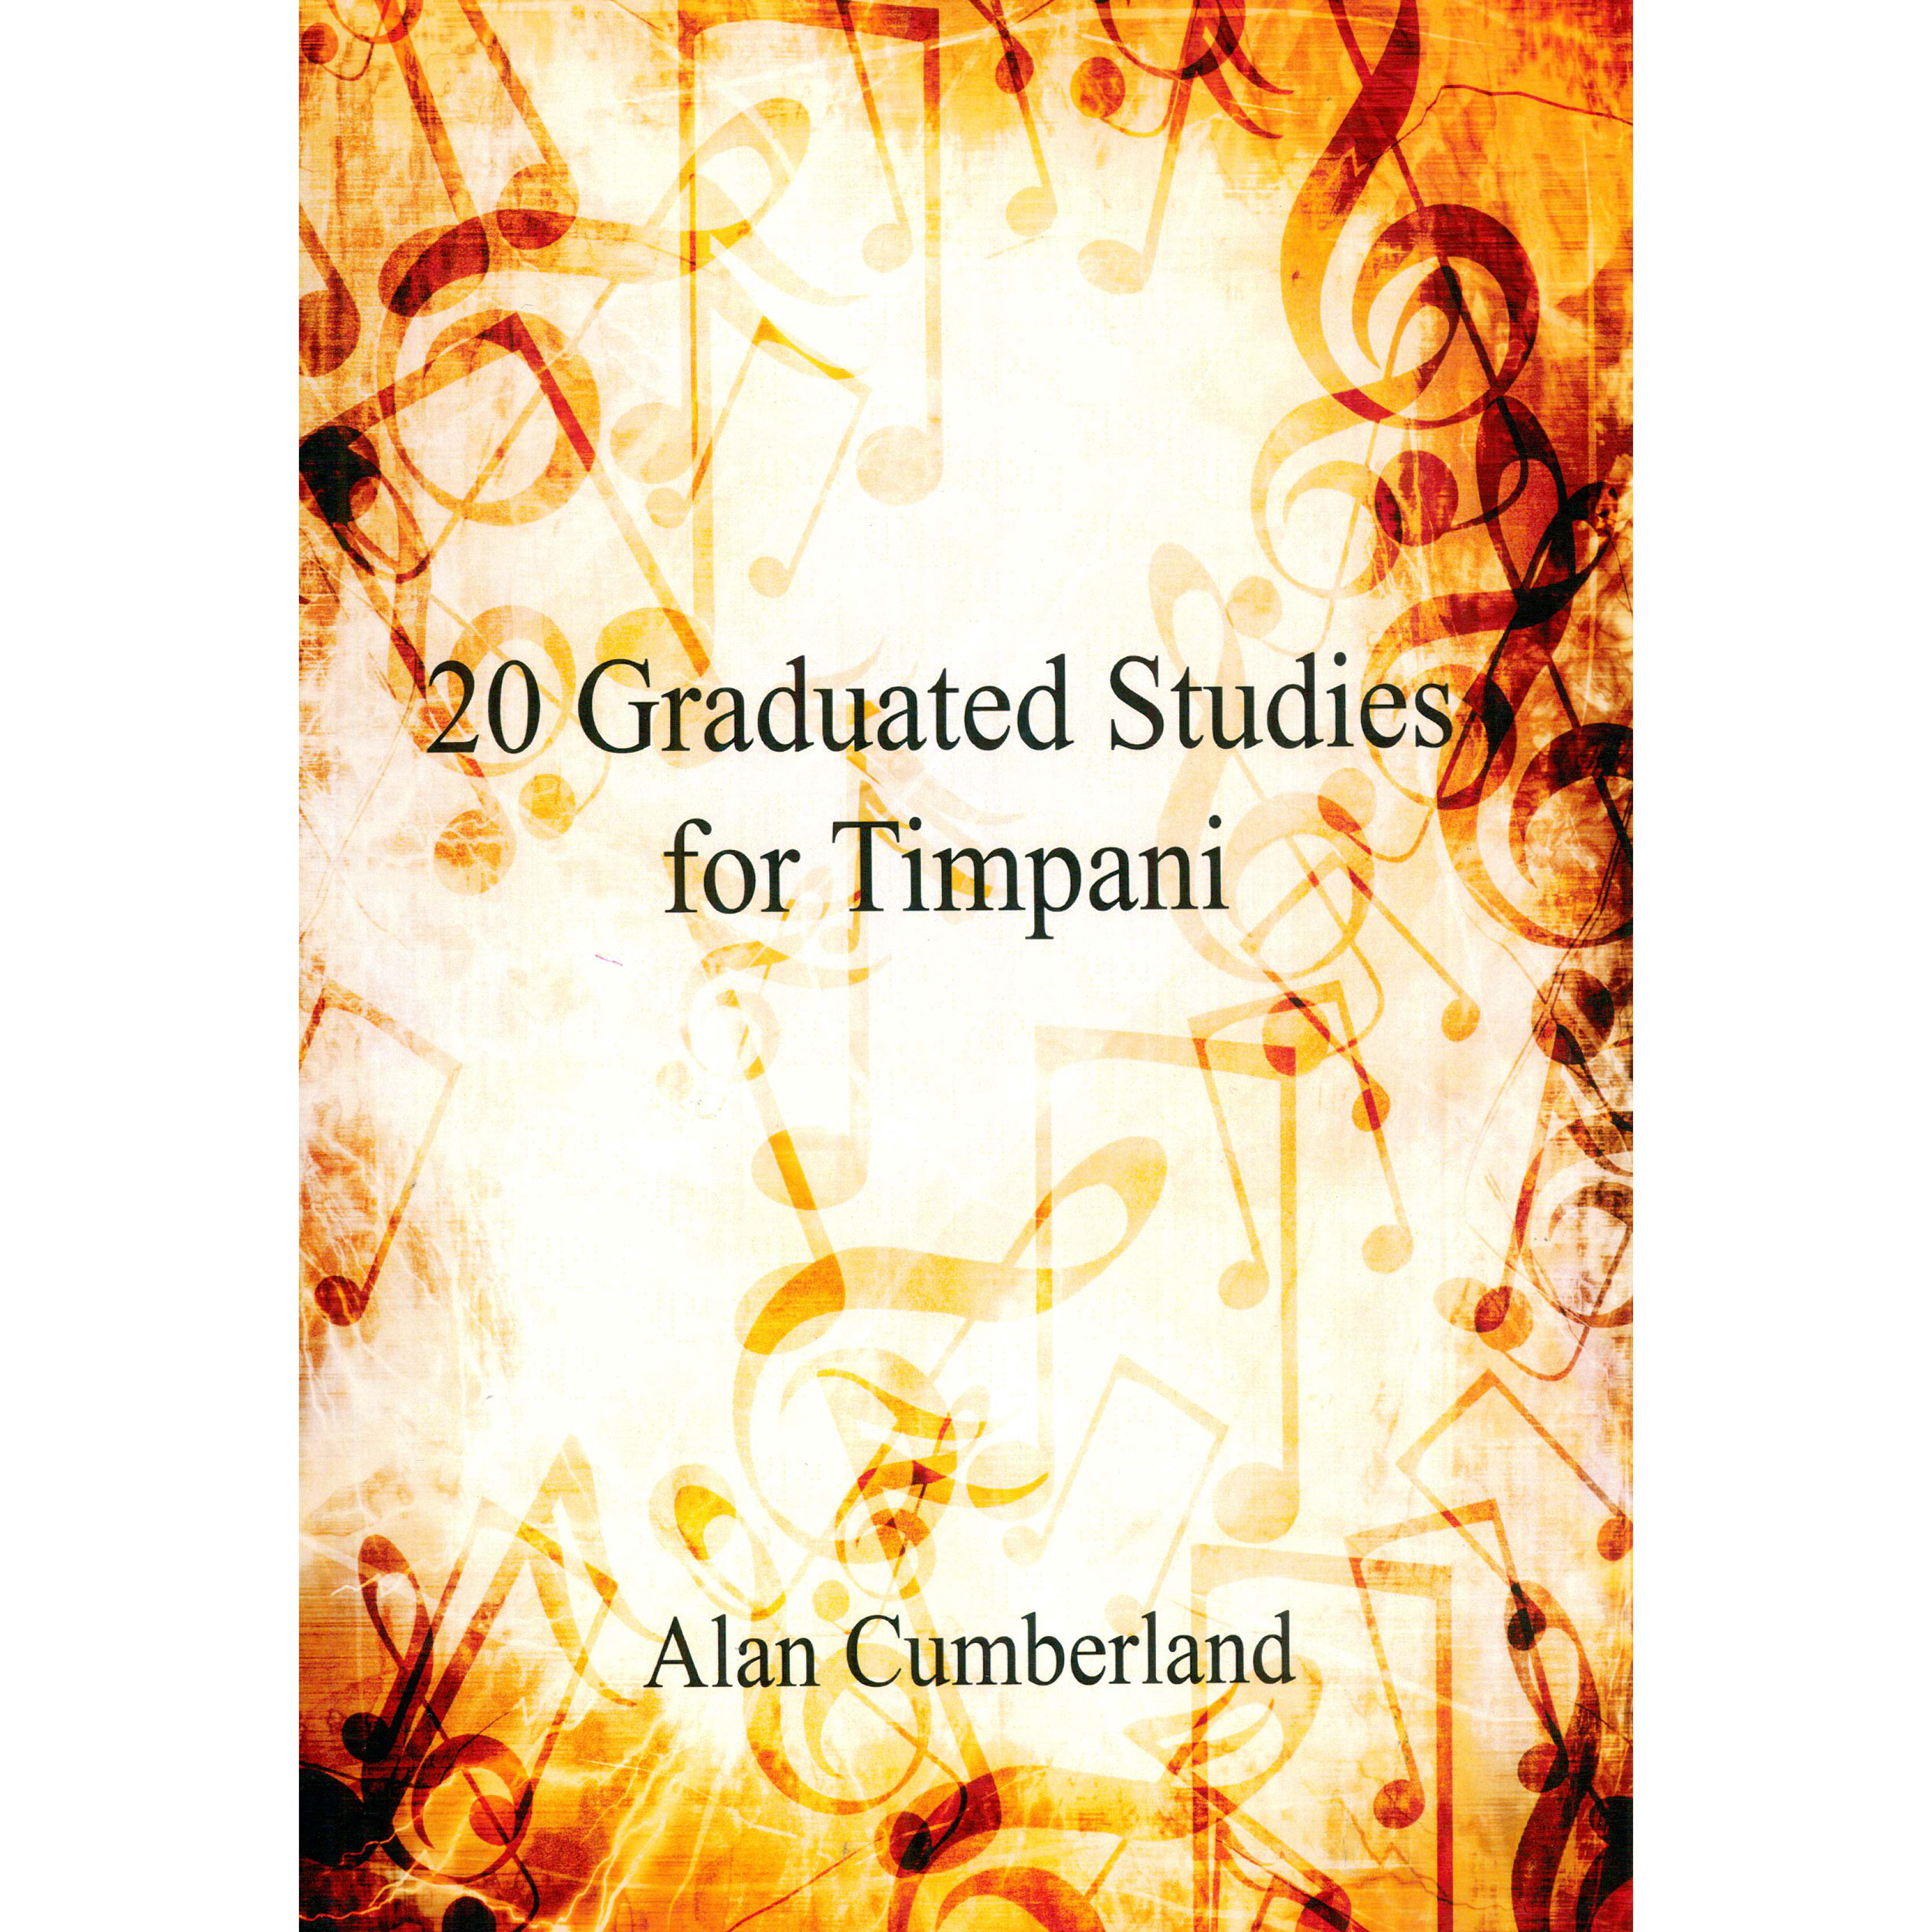 20 Graduated Studies for Timpani by Alan Cumberland